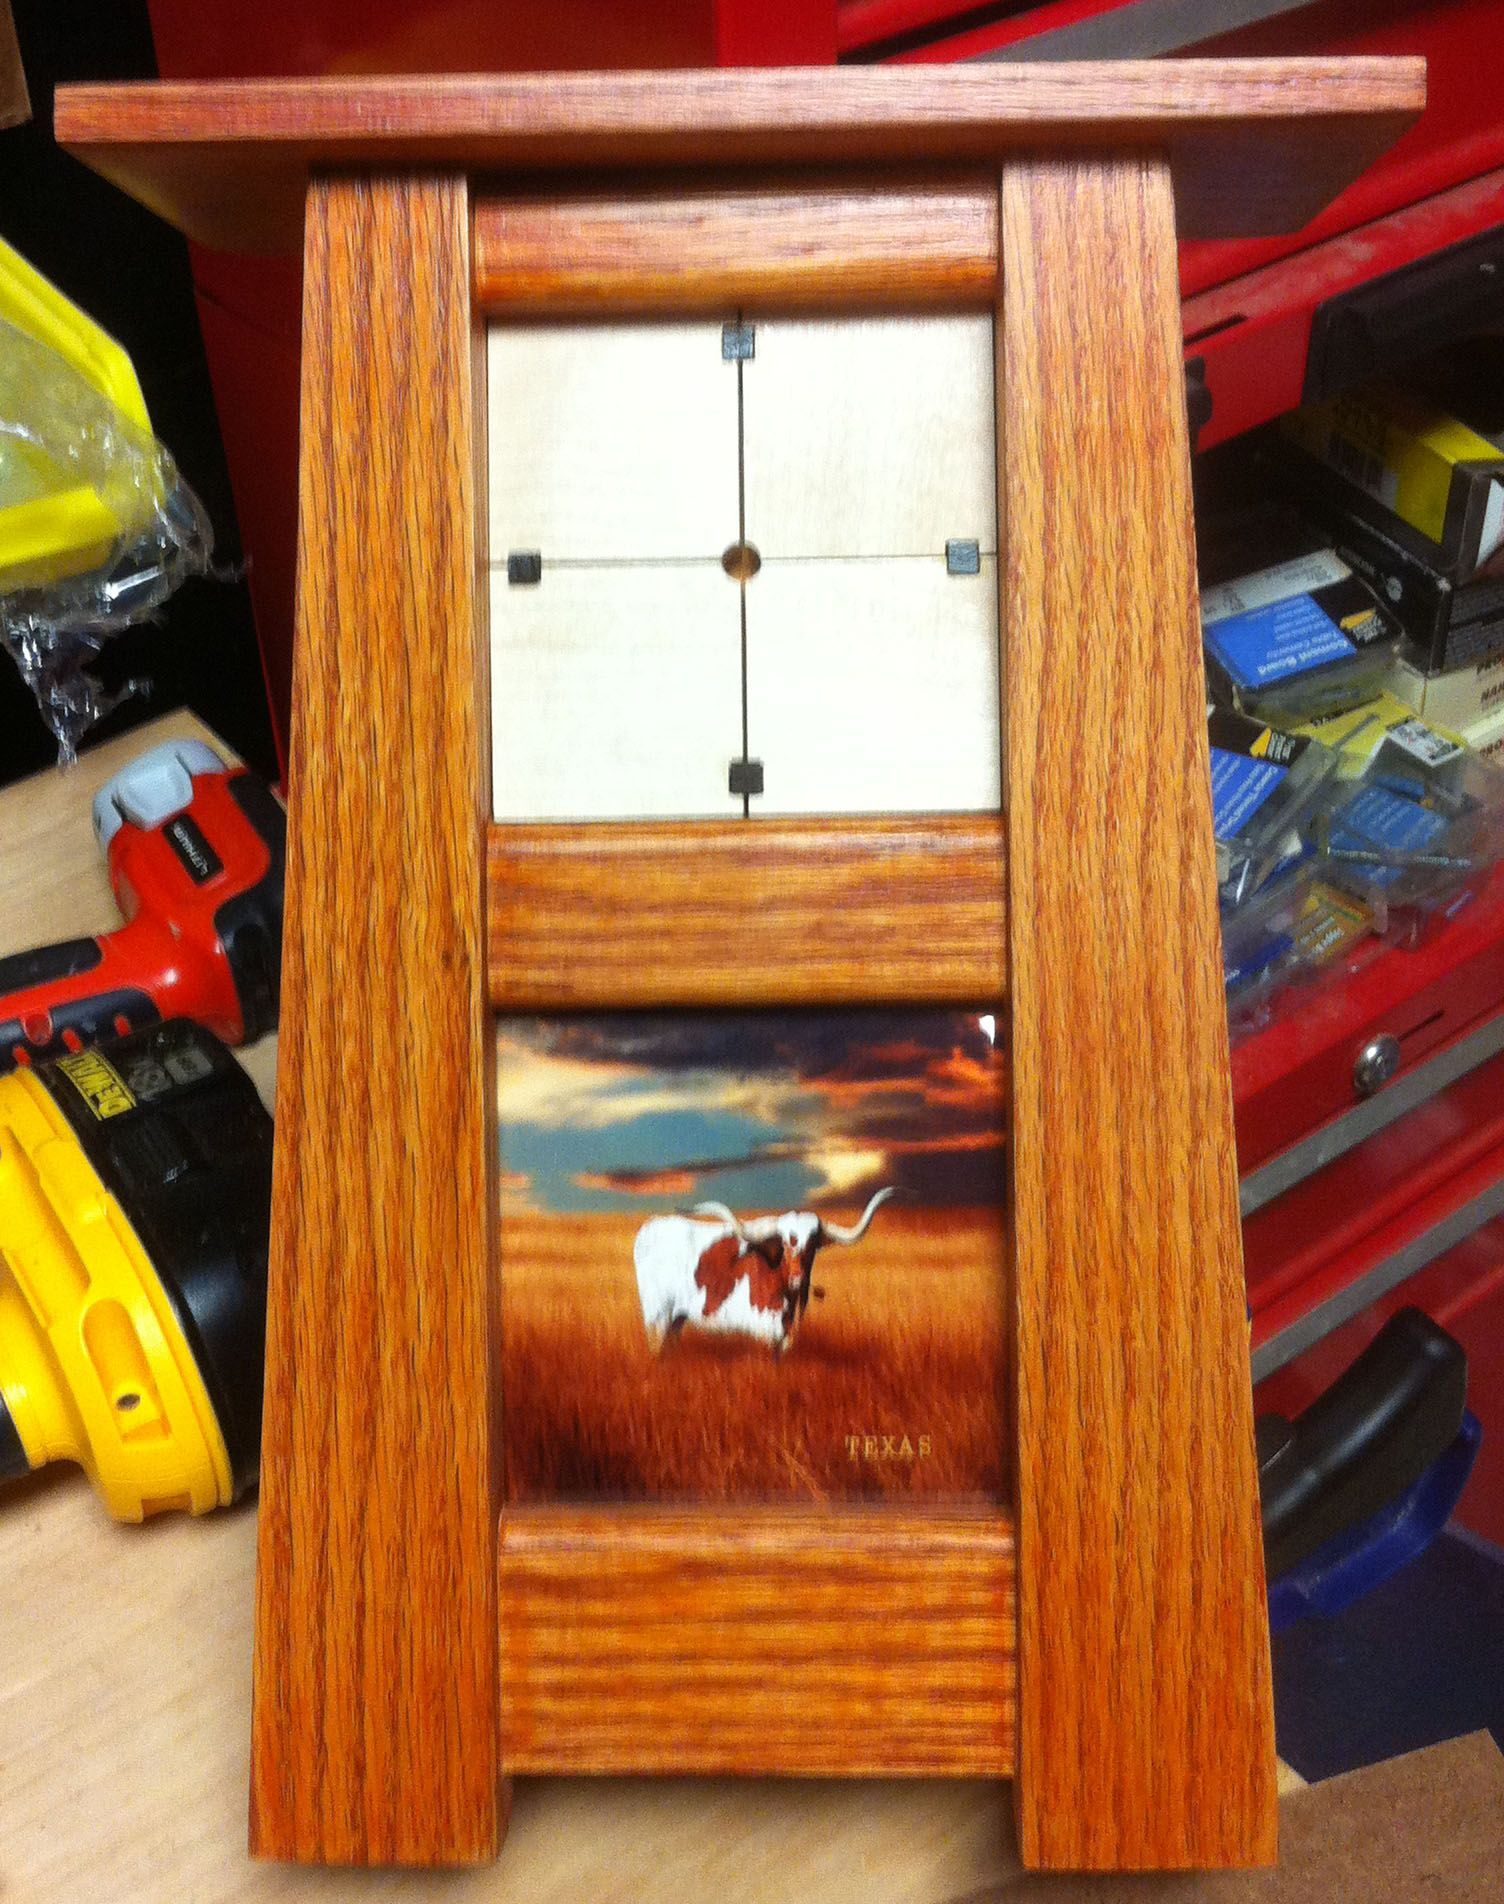 Almost completed Longhorn Clock, just waiting to receive clock movement to install